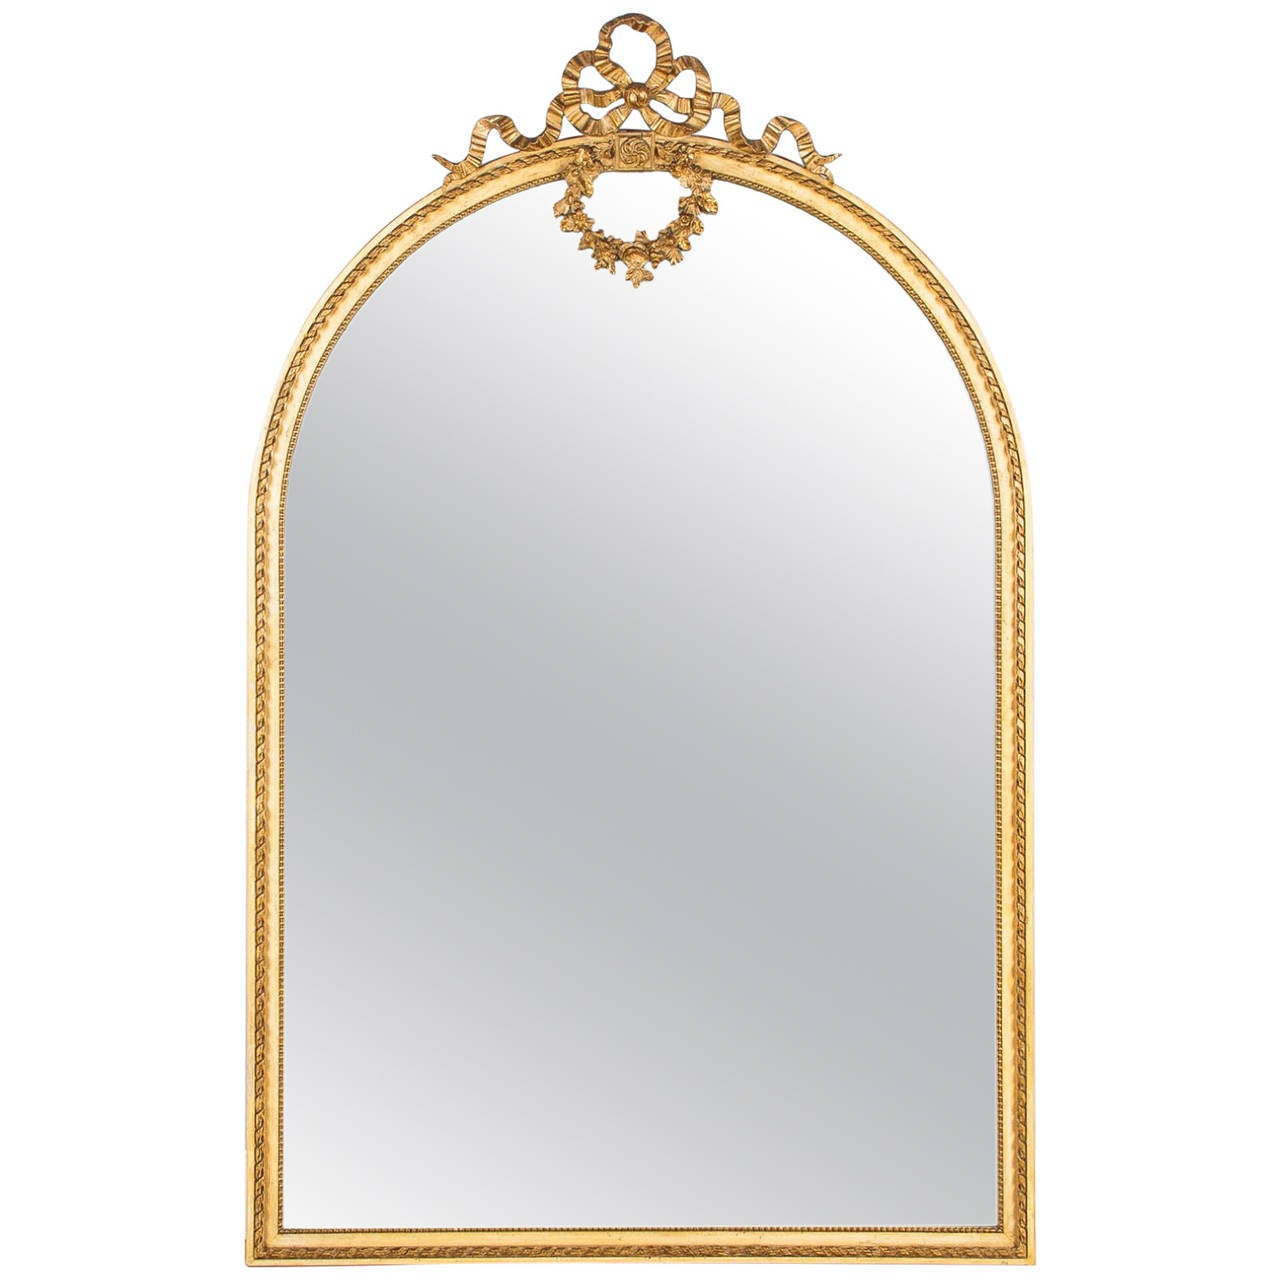 Arched gilt mirror at 1stdibs - French Louis Xvi Full Length Mirror Late 1800s 1